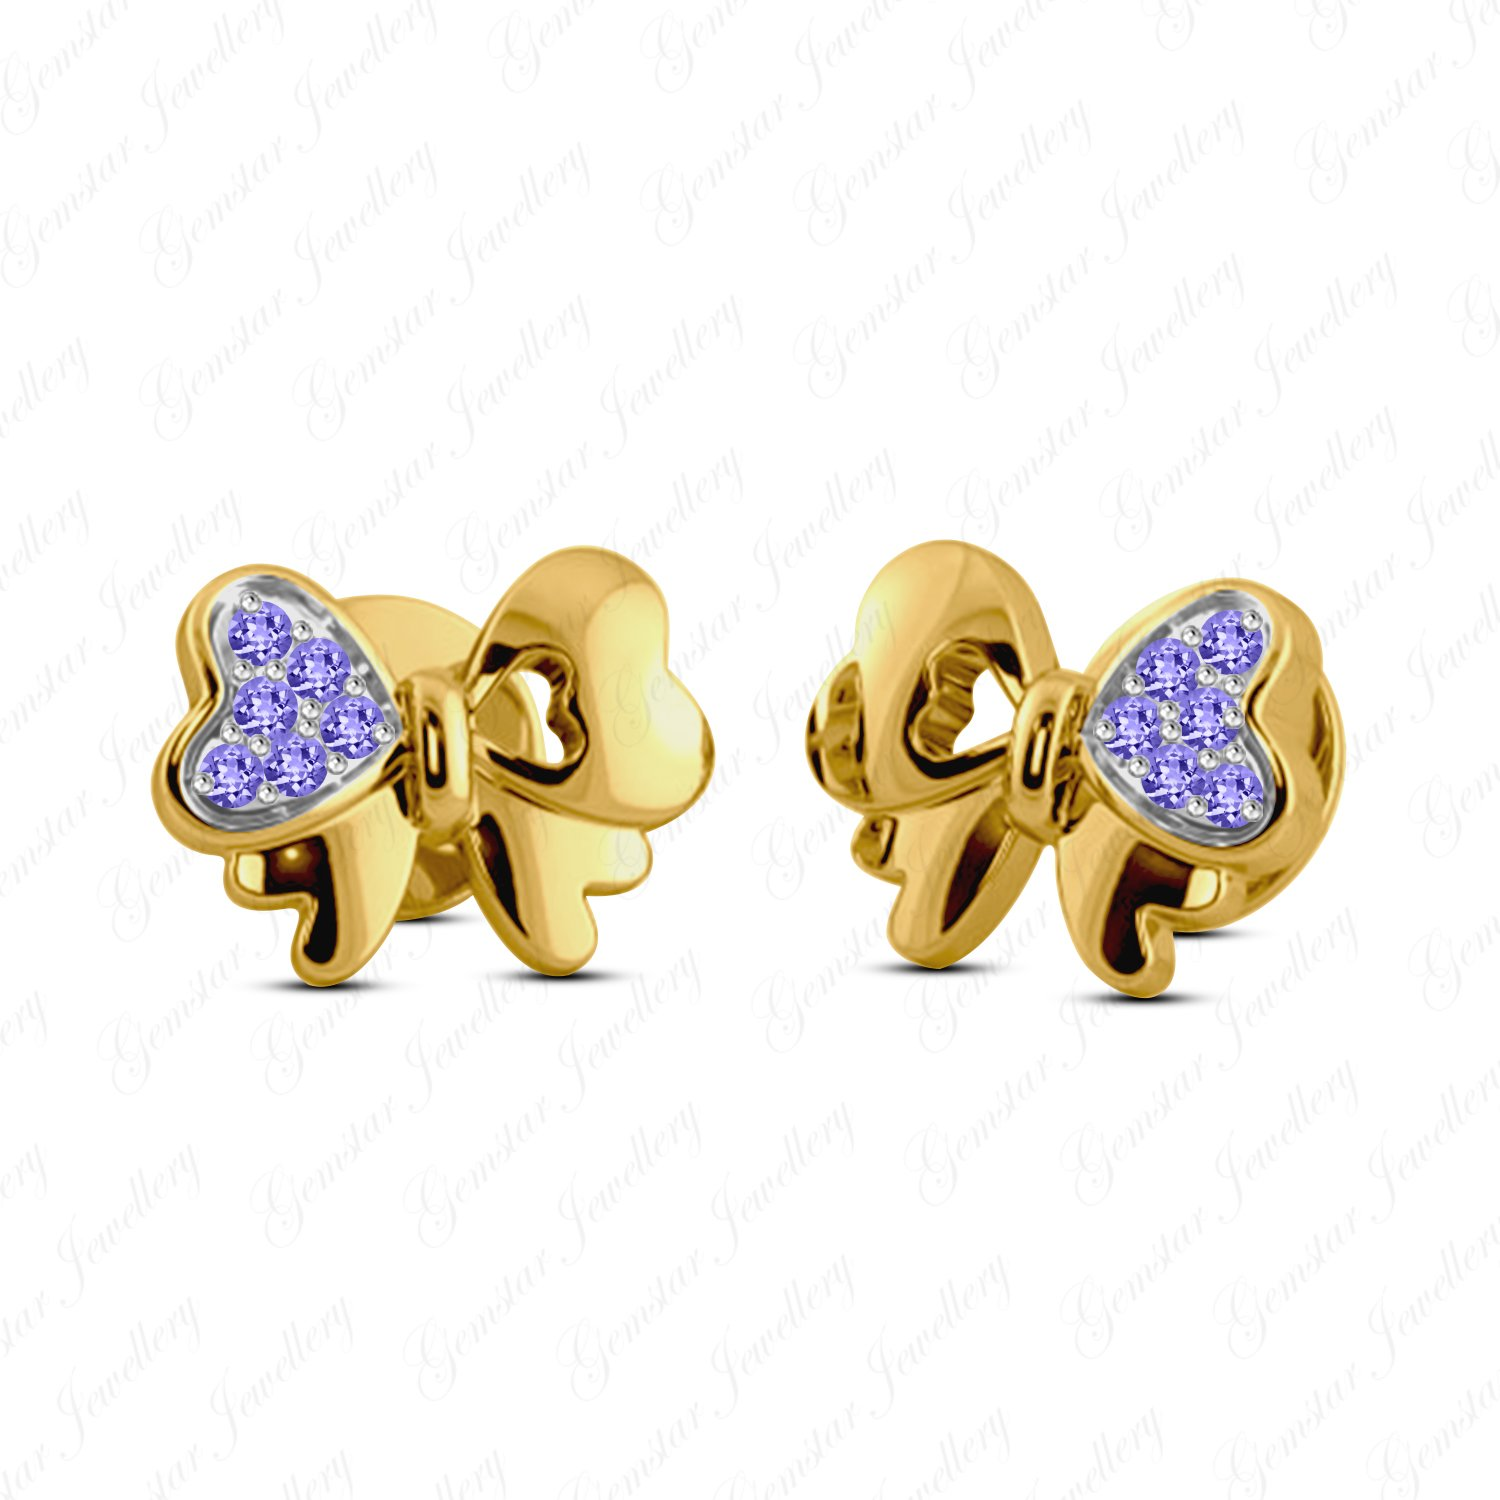 Gemstar Jewellery 925 Sterling Silver Round Tanzanite Minnie Mouse Bow Earrings 14k Yellow Gold Finish